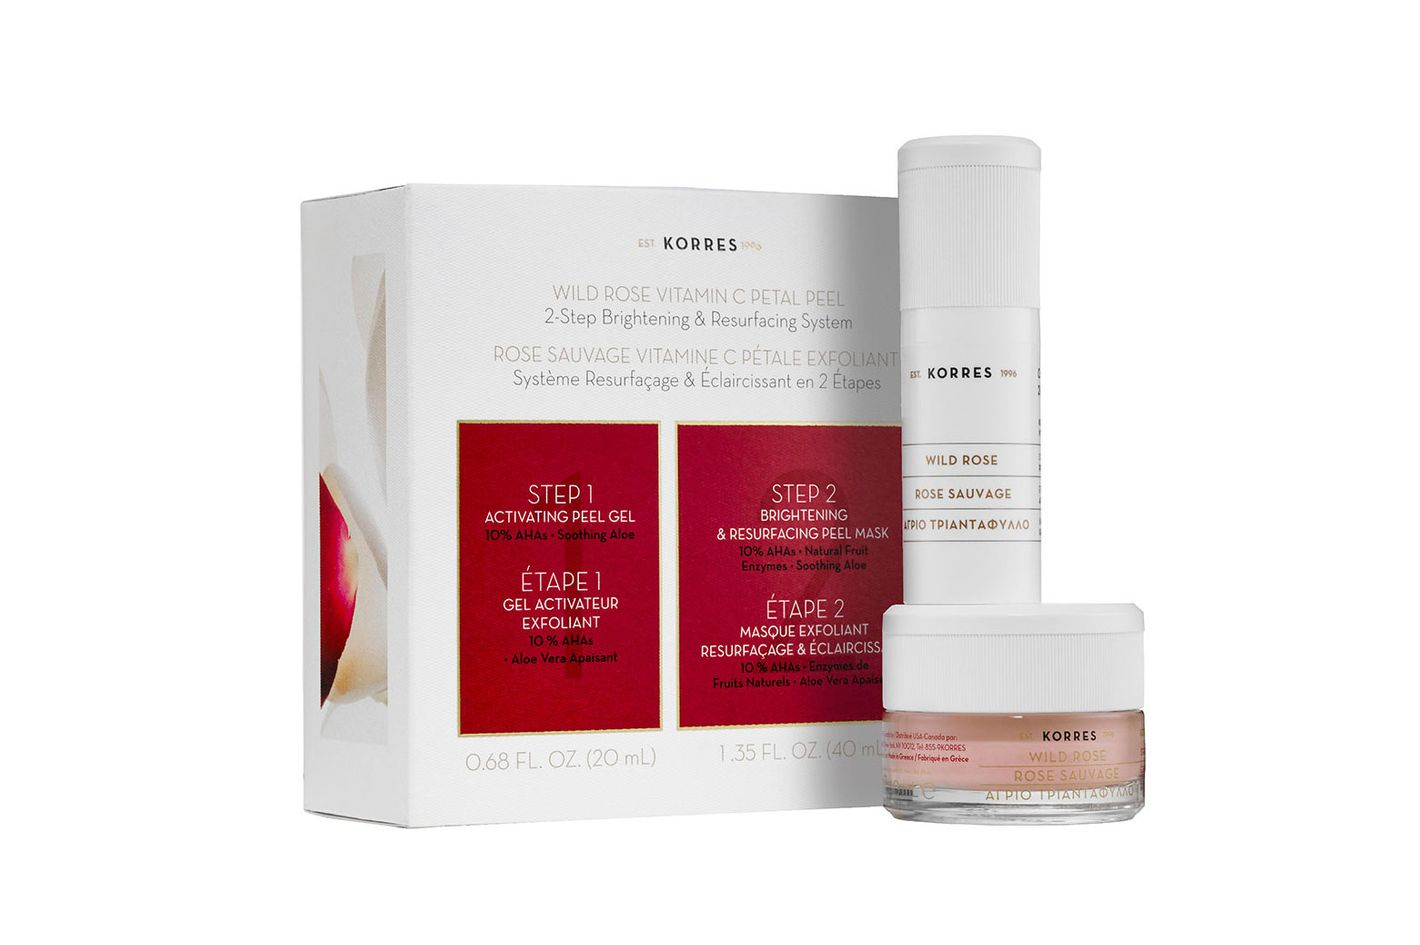 Korres Wild Rose Vitamin C Petal Peel 2-Step Brightening & Resurfacing System